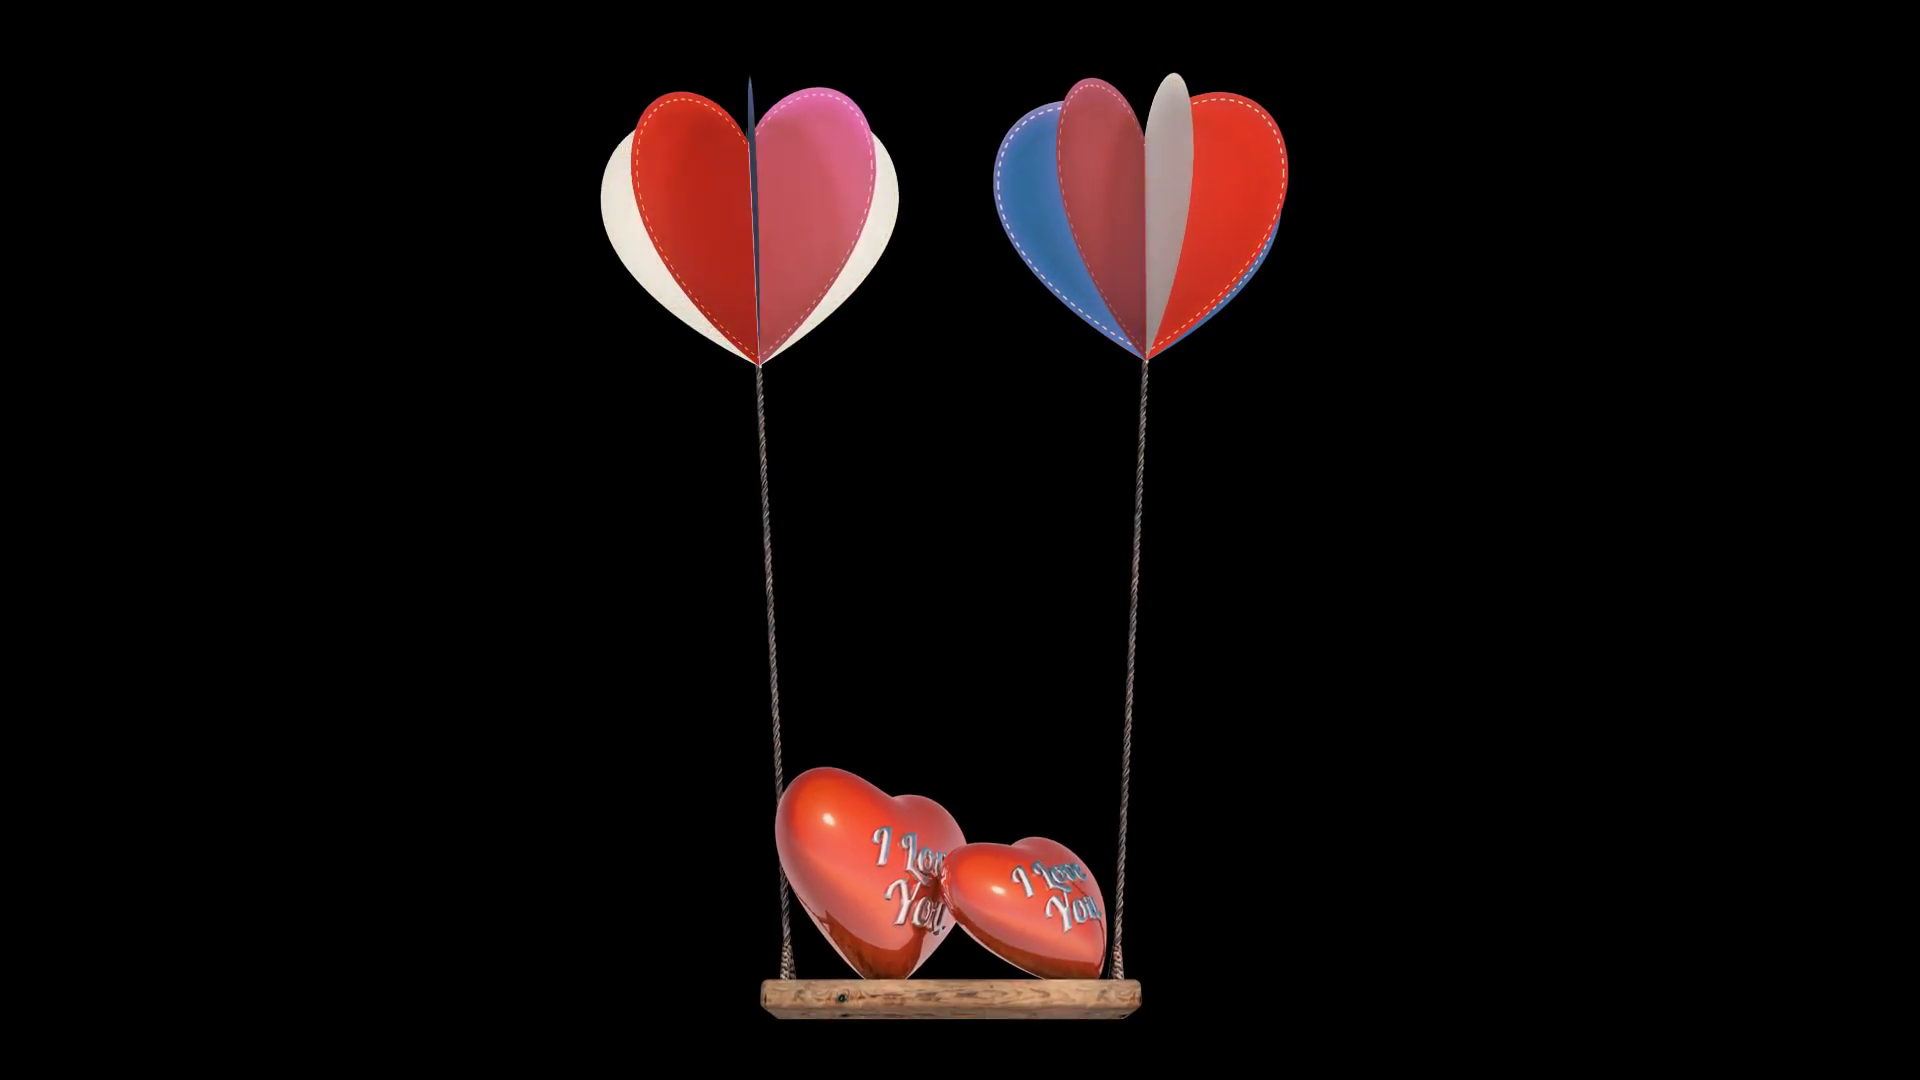 Heart Balloon Background Animation for Valentines Day and Wedding. Motion  Background - VideoBlocks - Animated Valentines Day PNG